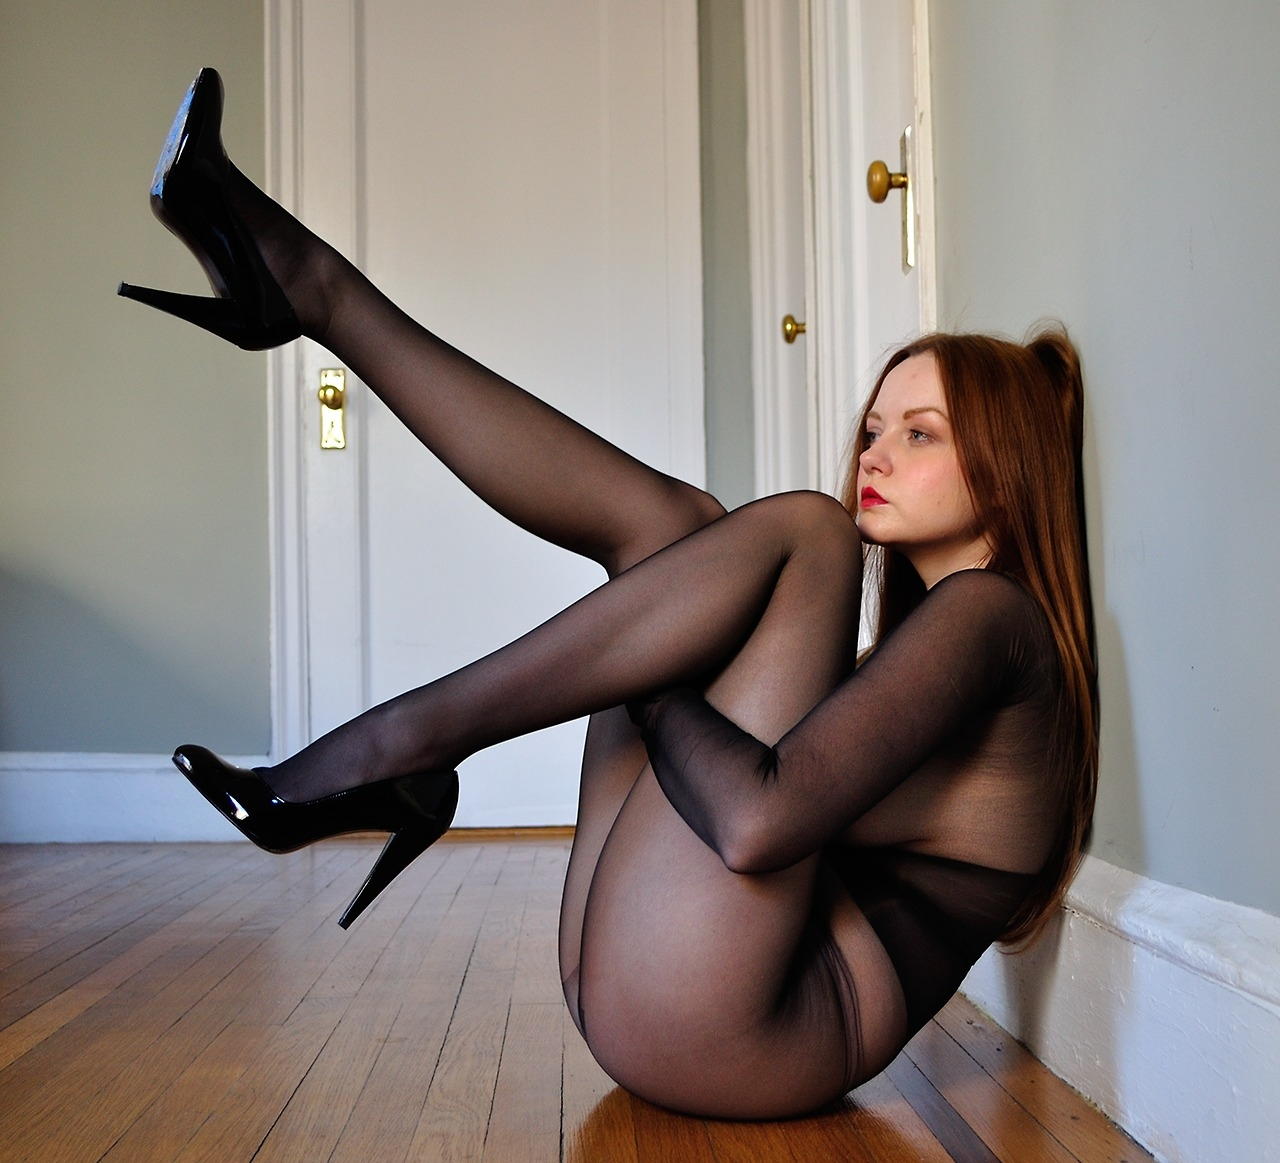 Black nylons and online porn get mom hot and horny 2